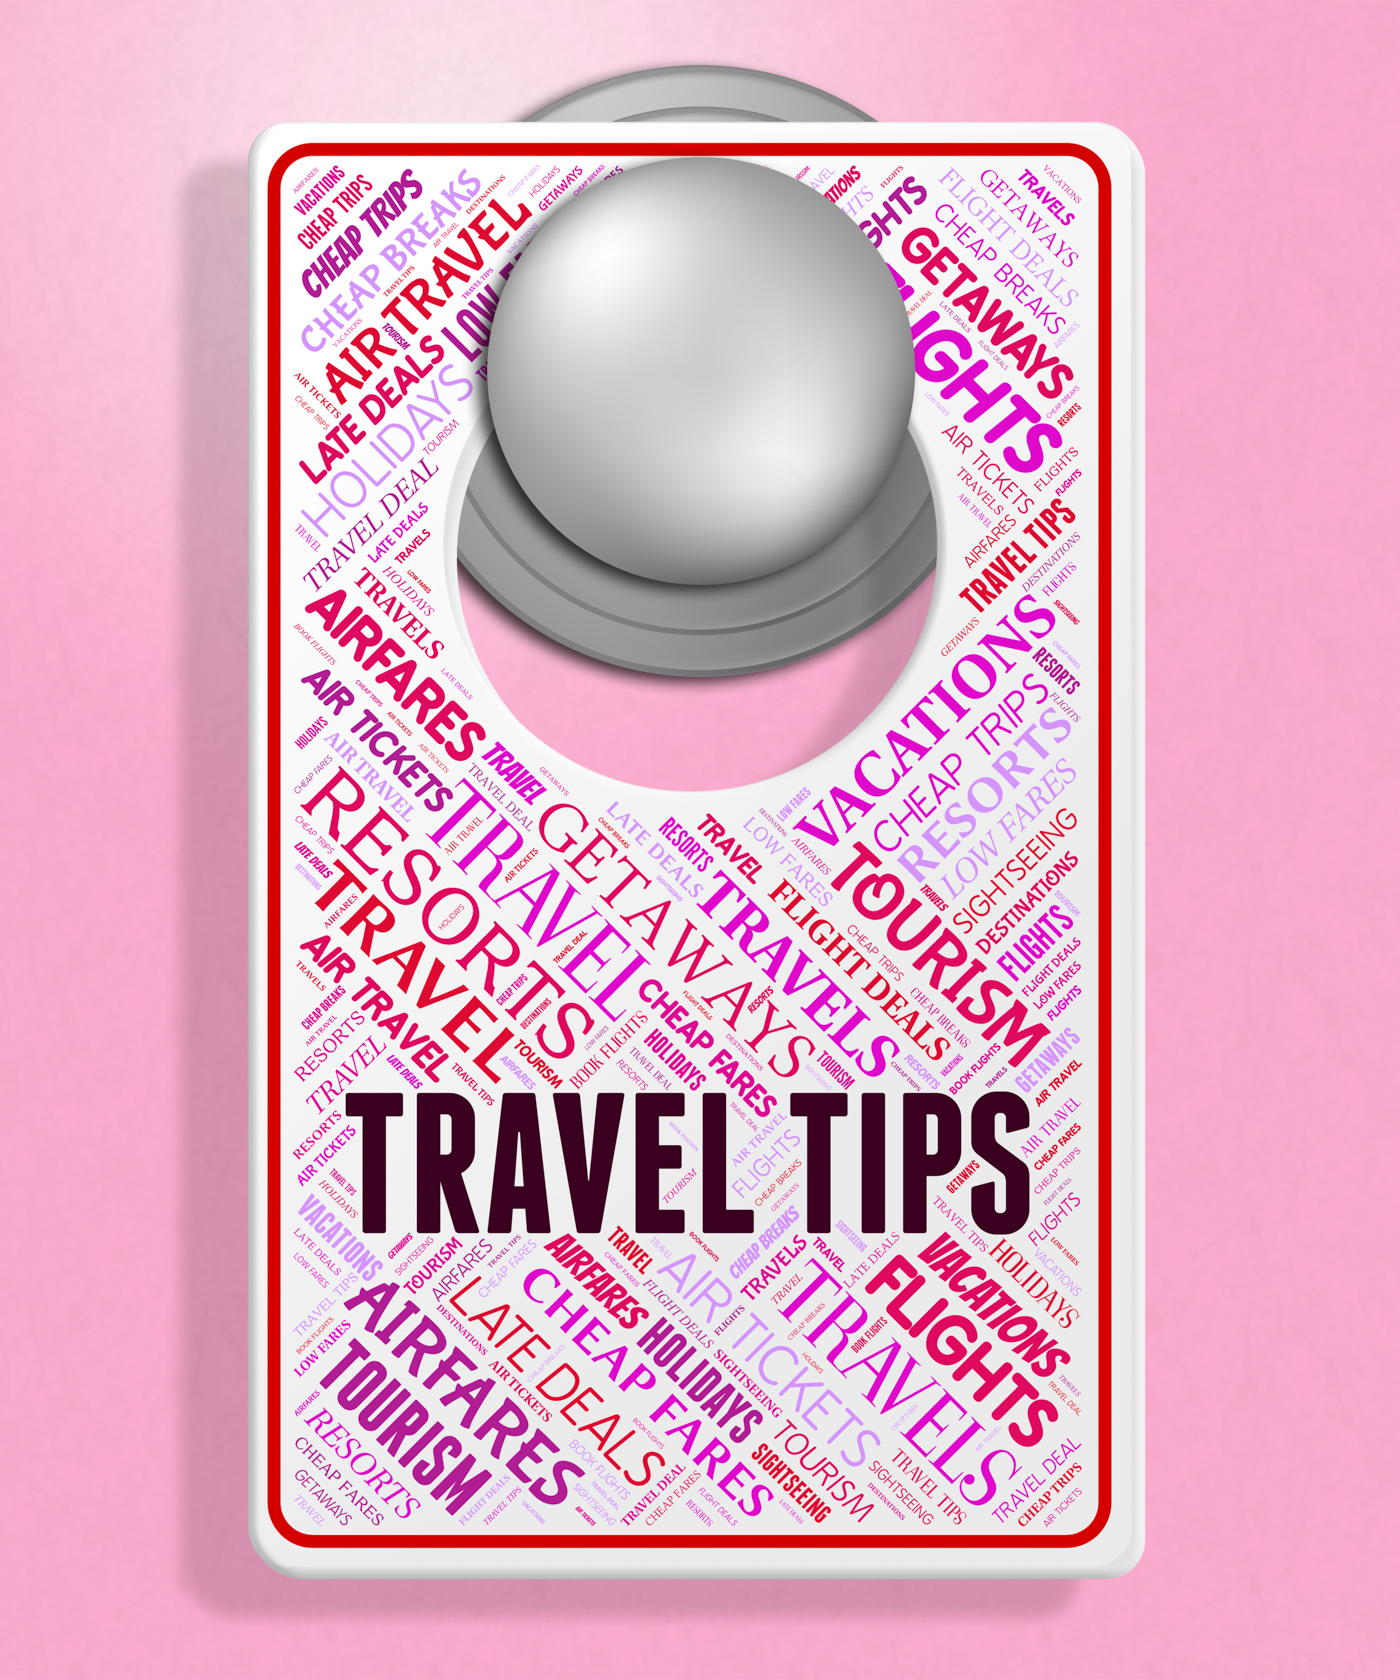 Travel tips indicates signs tours and hints photo